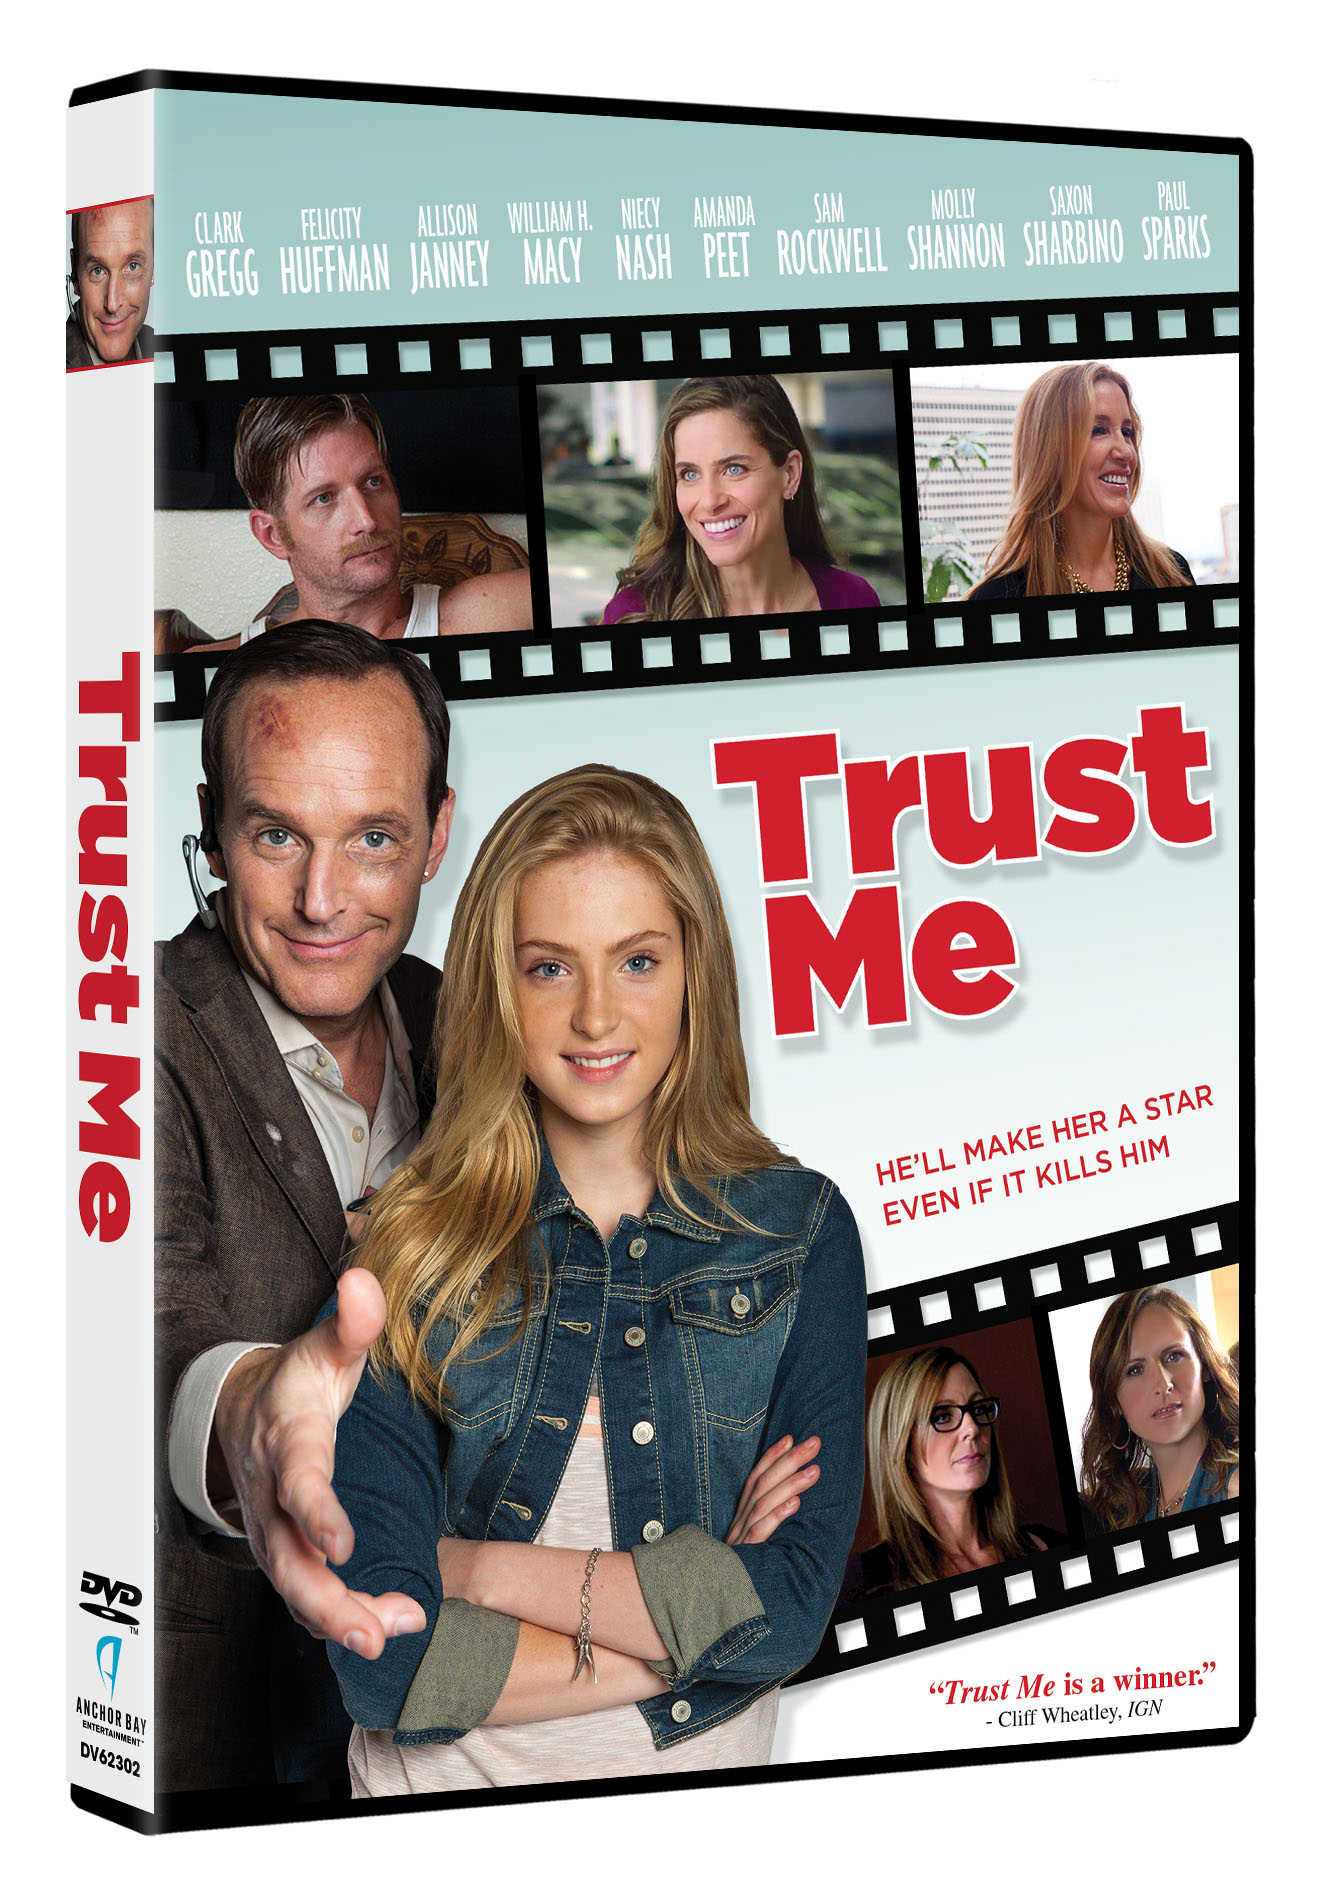 EXCLUSIVE: Check Out The DVD Box Art For Trust Me, Starring Clark Gregg